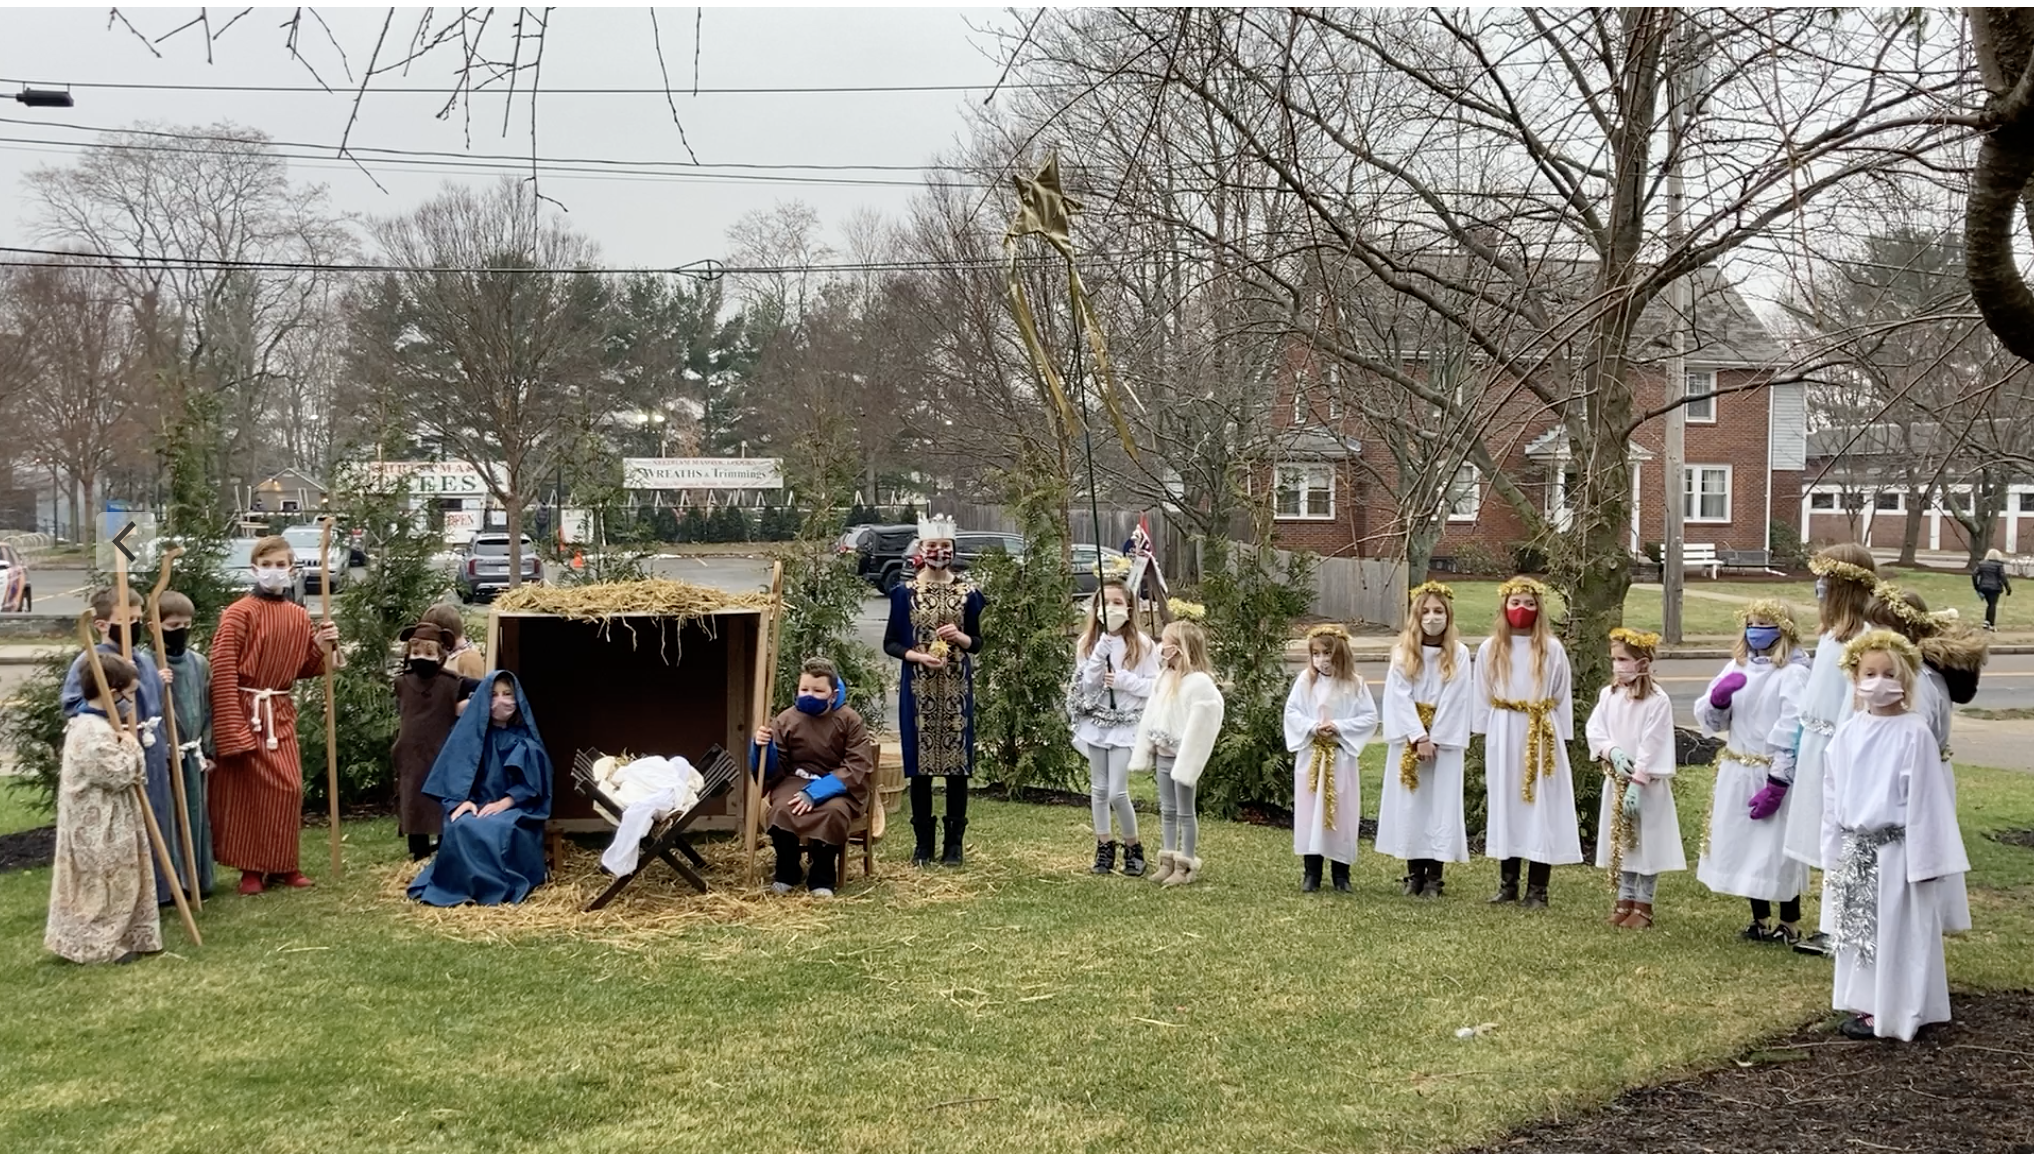 Pageant Tableau Christ Church Needham 2020.12.12